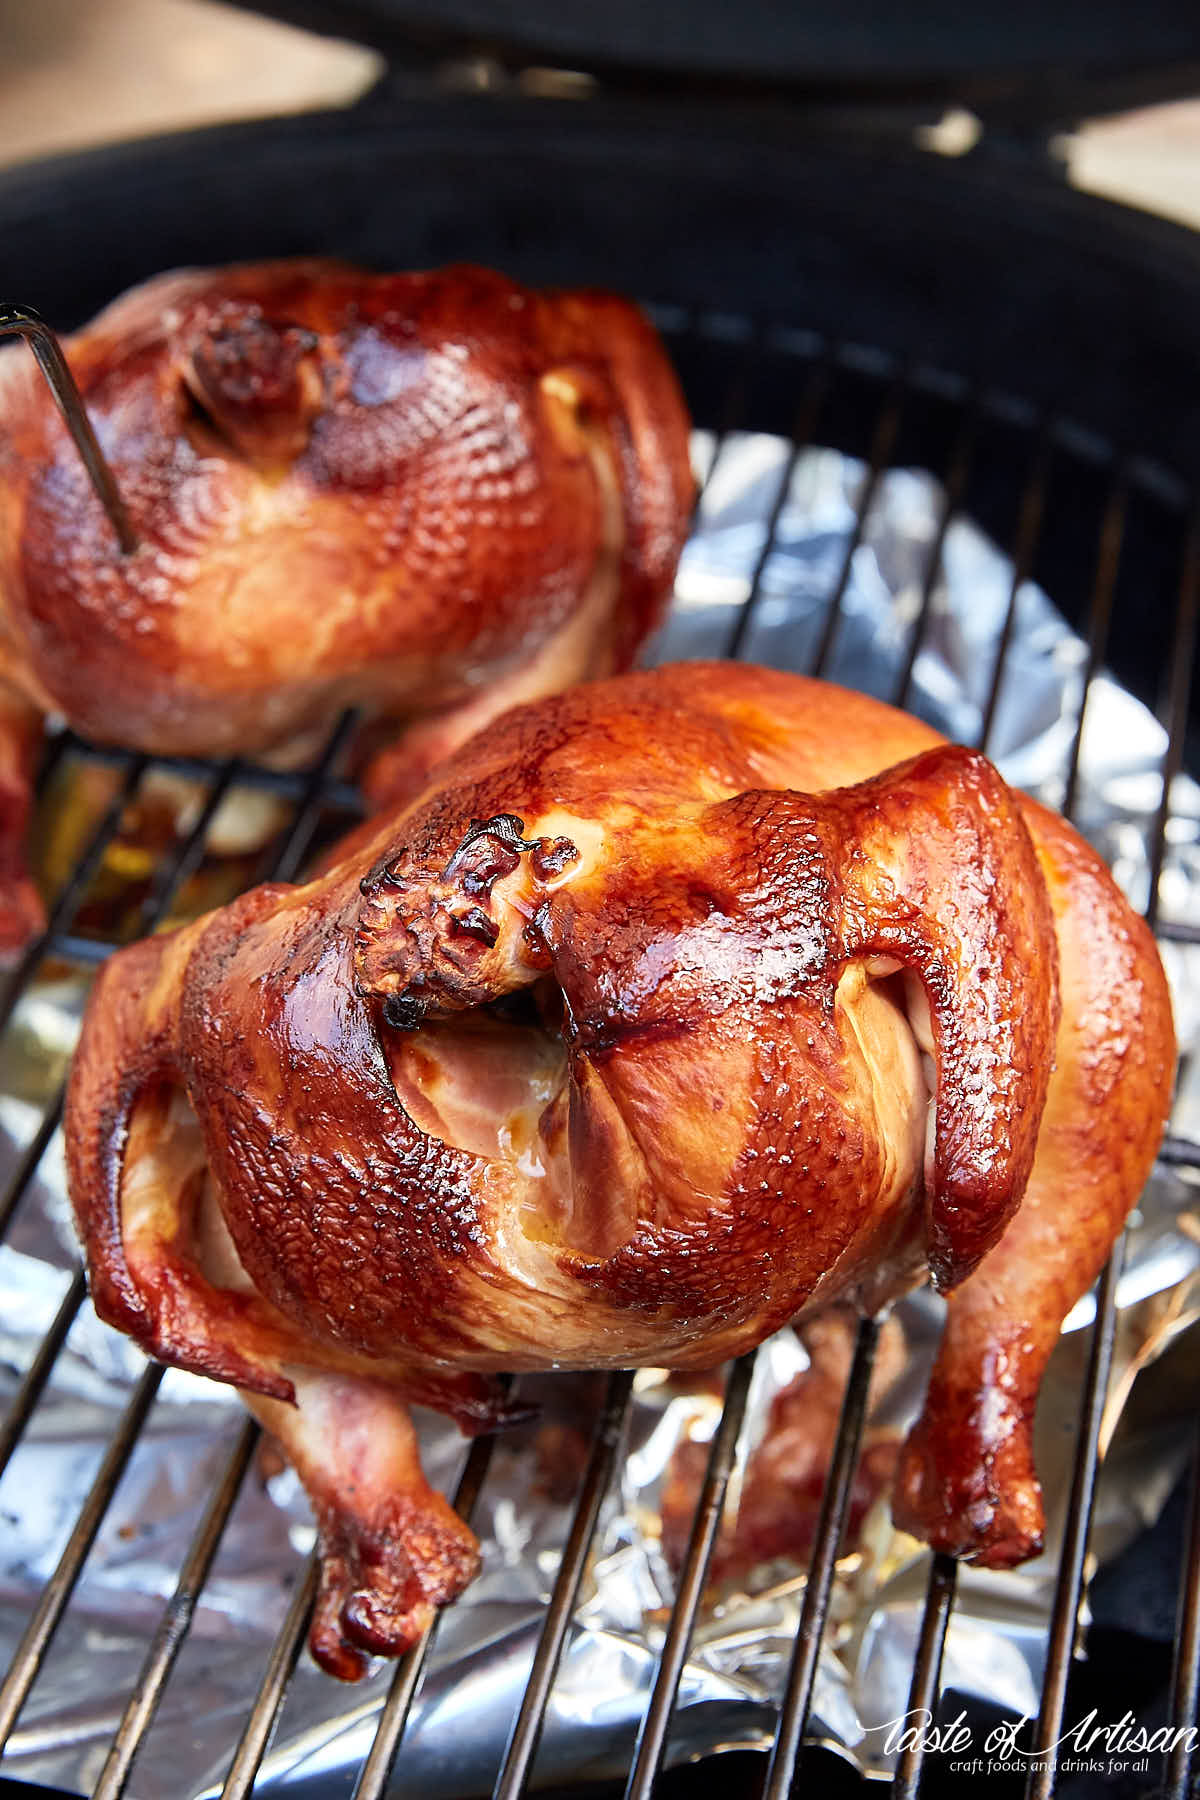 Two golden brown chickens on a smoker rack.